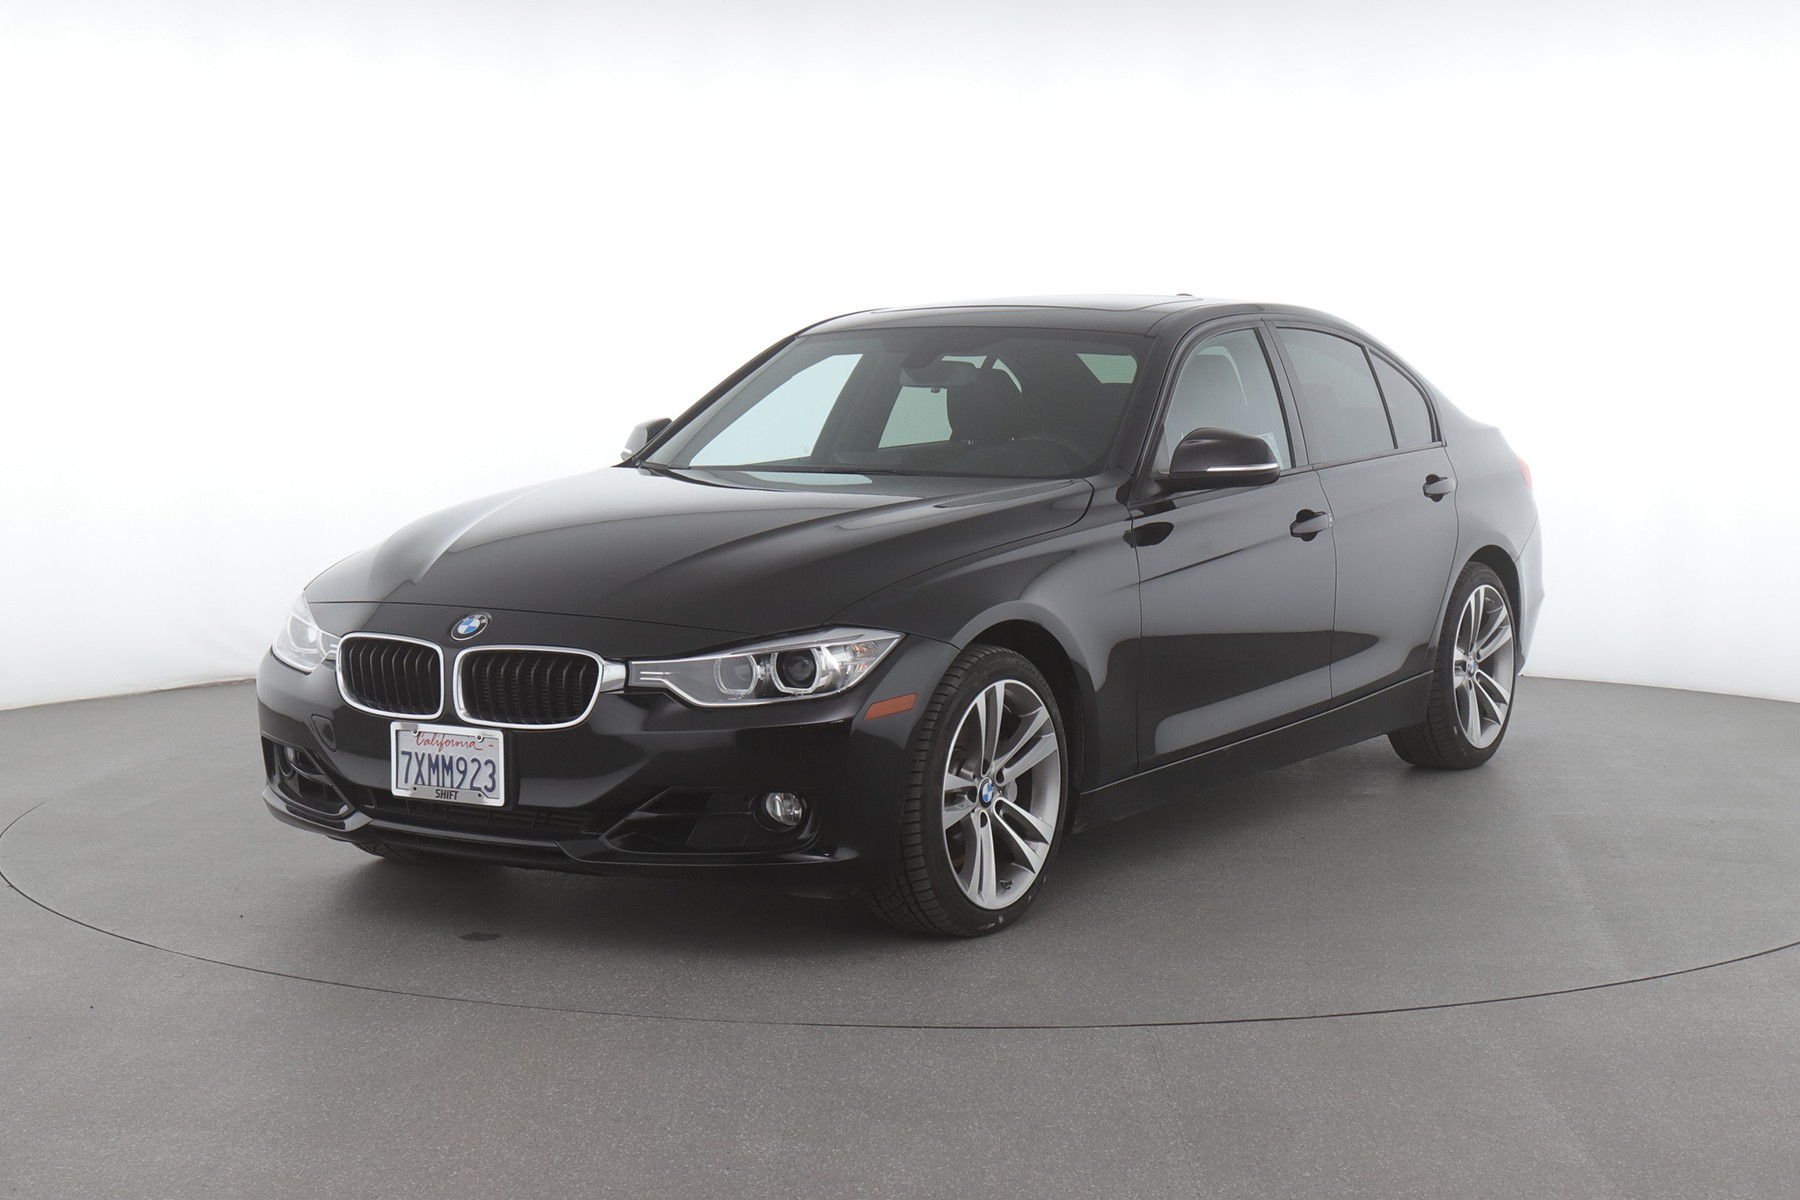 2013 BMW 3 Series (from $15,000)